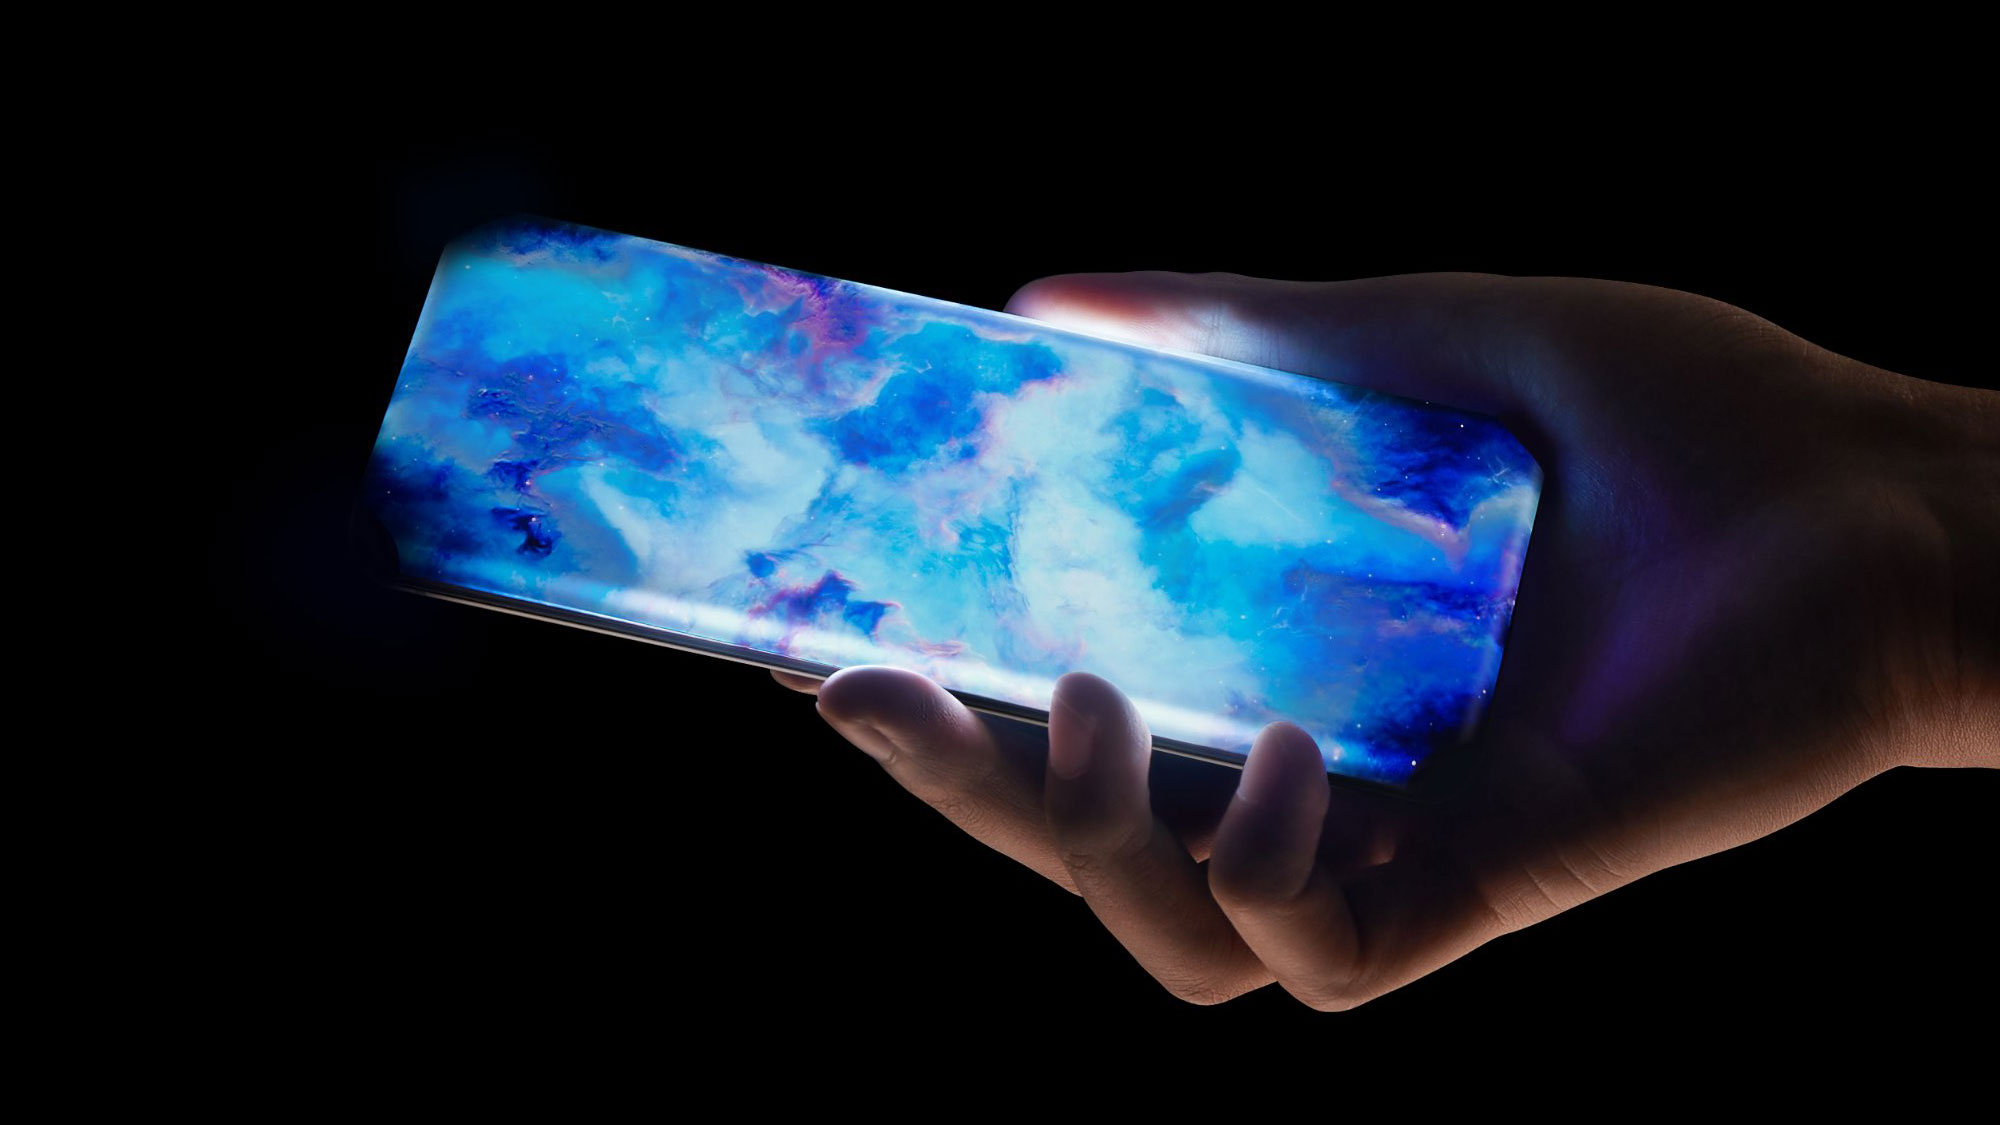 Xiaomi Quad-curved Waterfall Display Concept Smartphone